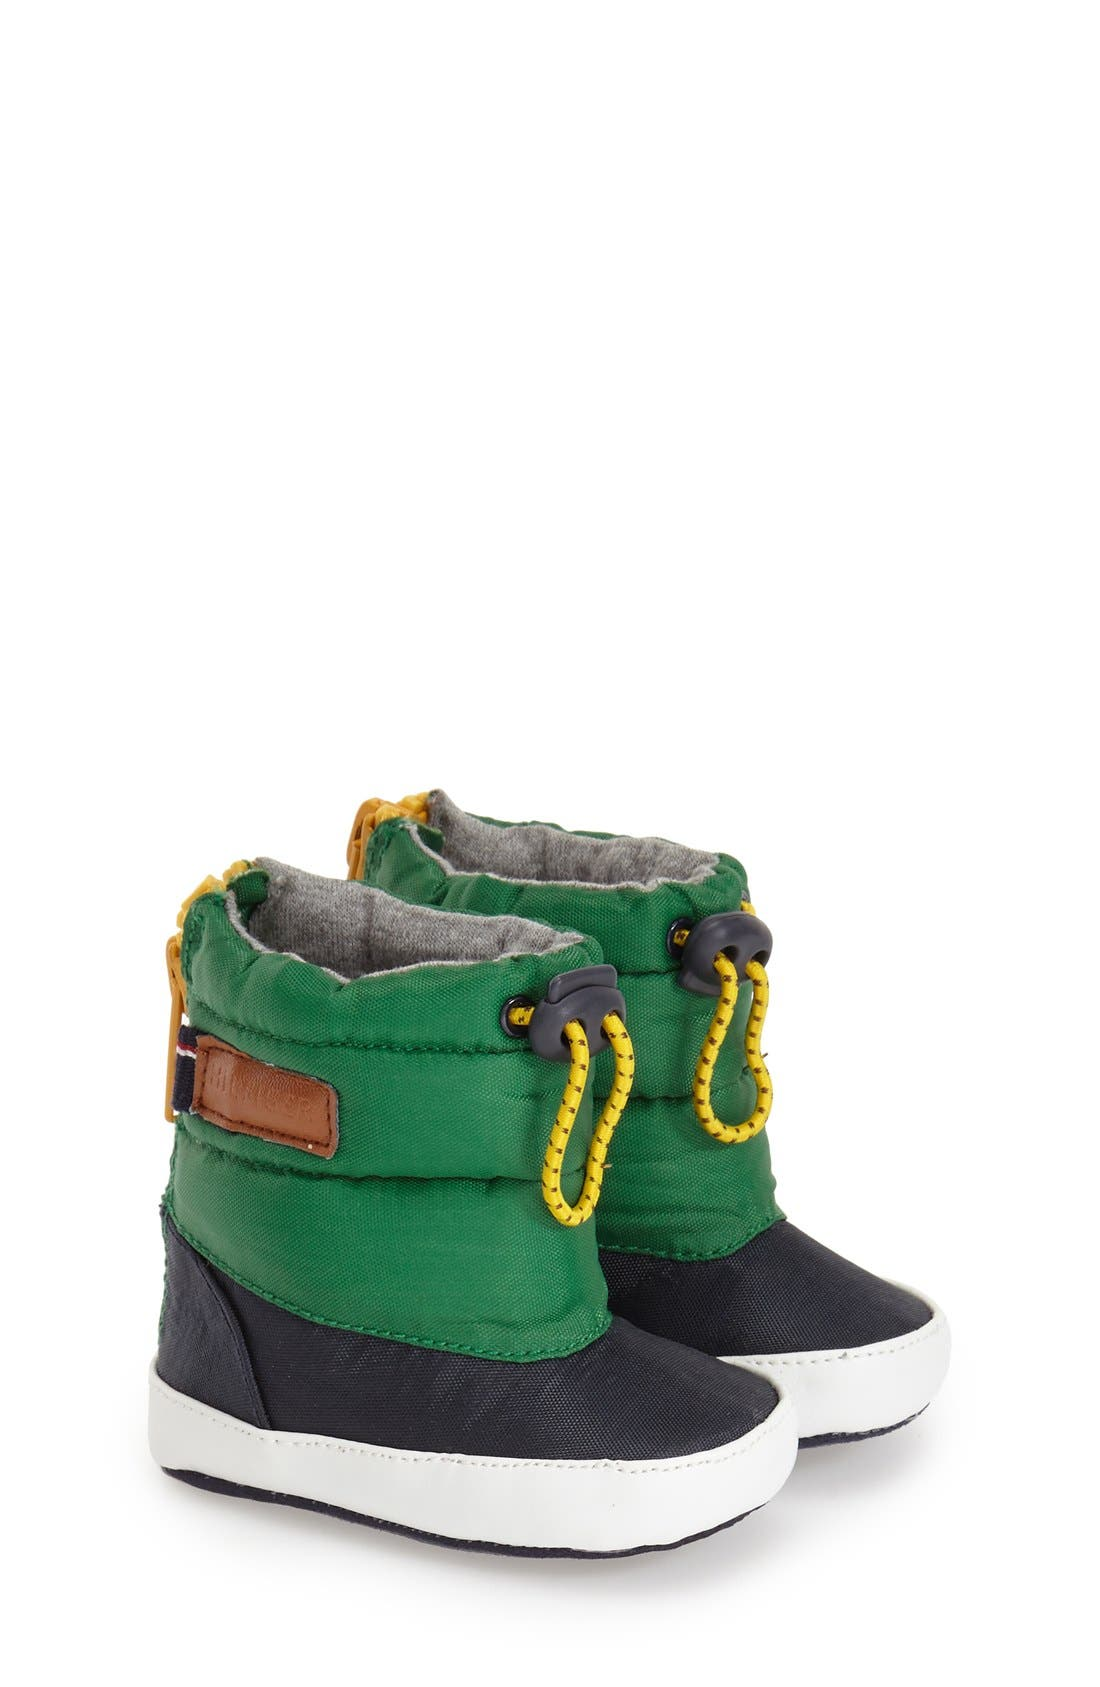 TOMMY HILFIGER 'LilMadison' Boot, Main, color, 303